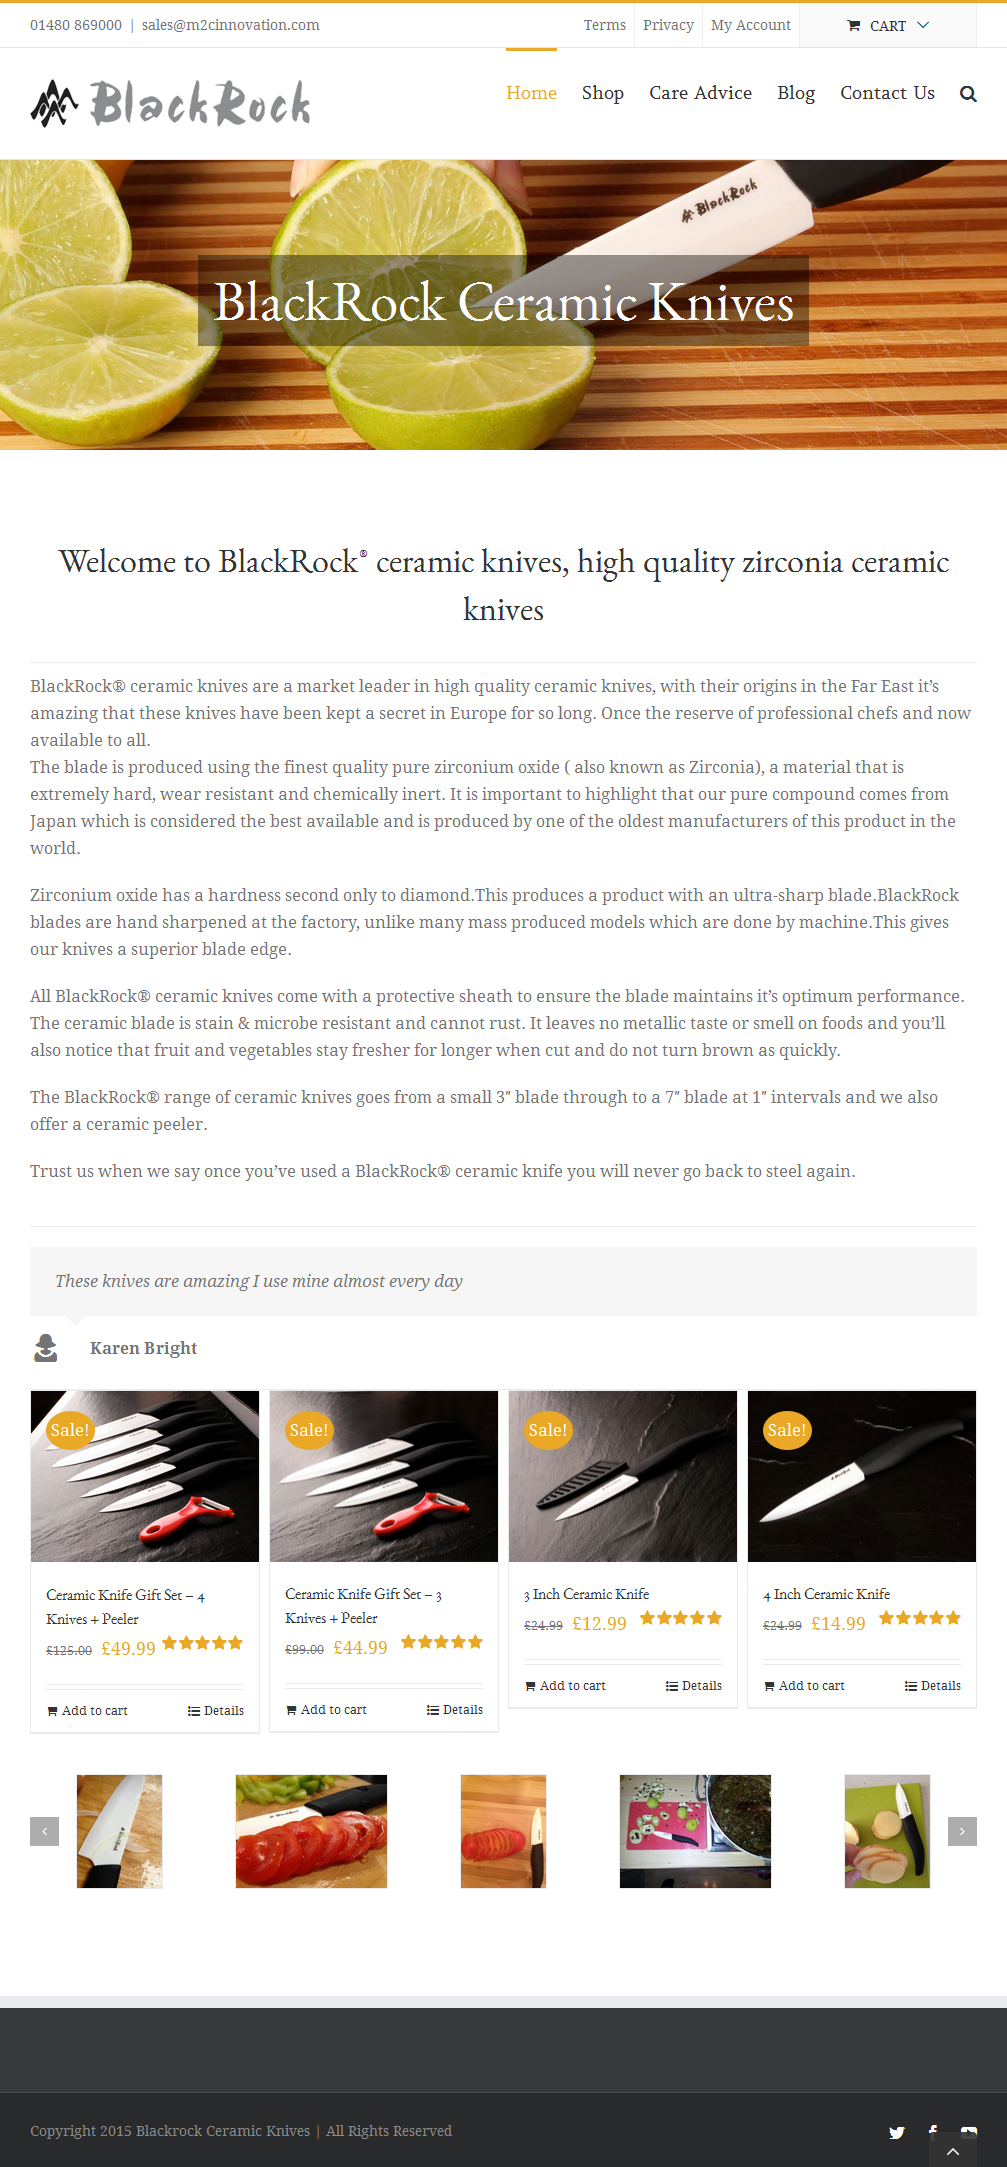 BlackRock ceramic knives, high quality zirconia ceramic knives